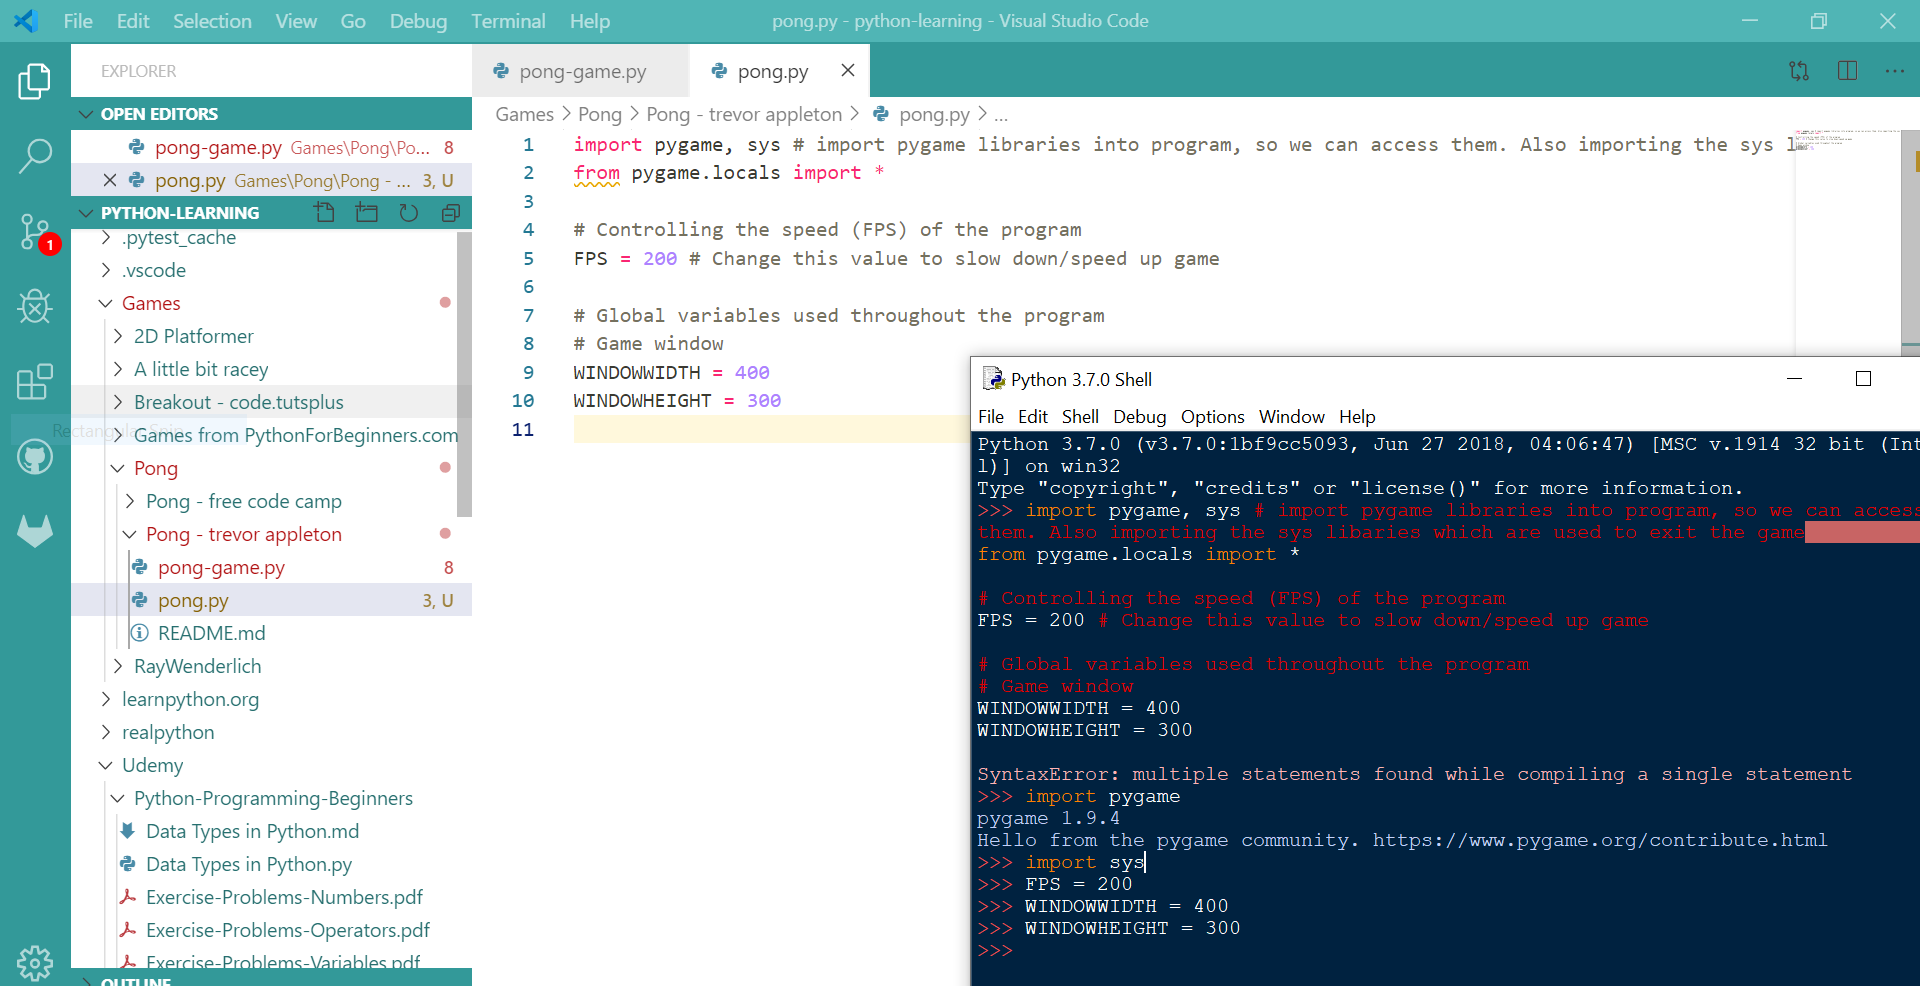 Errors in python on VScode and pasting whole code into idle